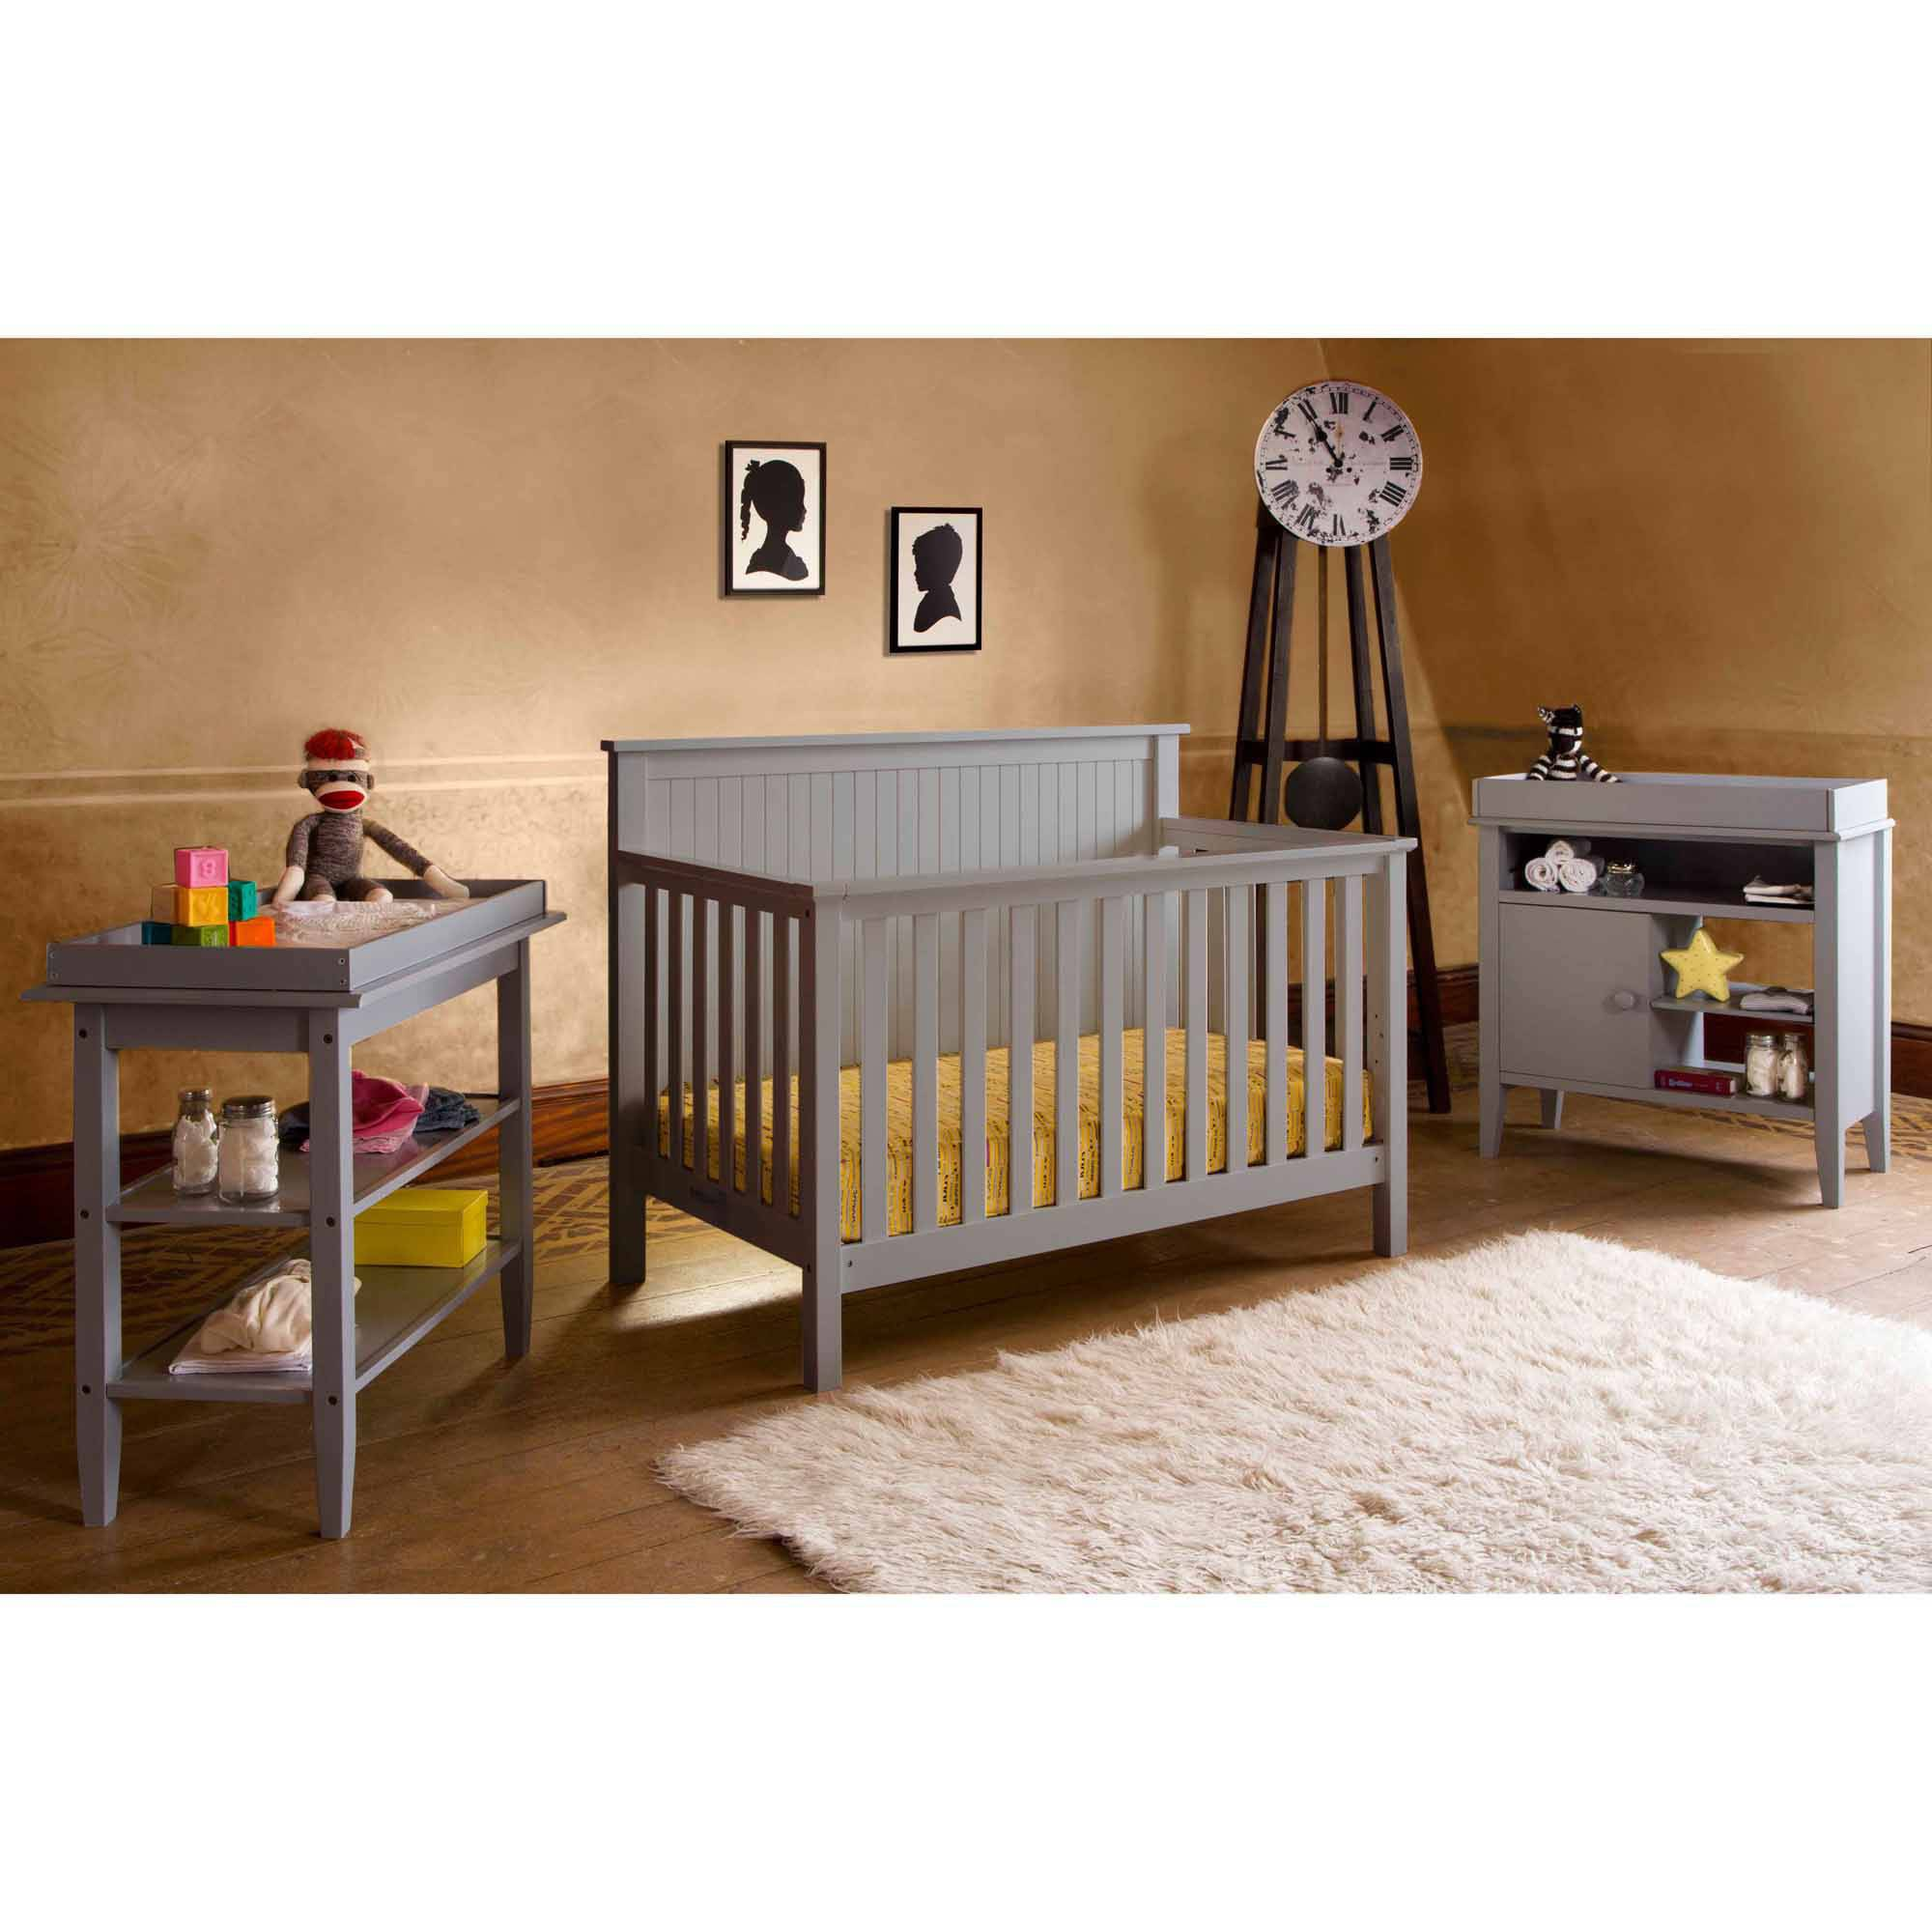 Lolly and Me Americana 4-in-1 Fixed-Side Convertible Crib, Pebble Grey